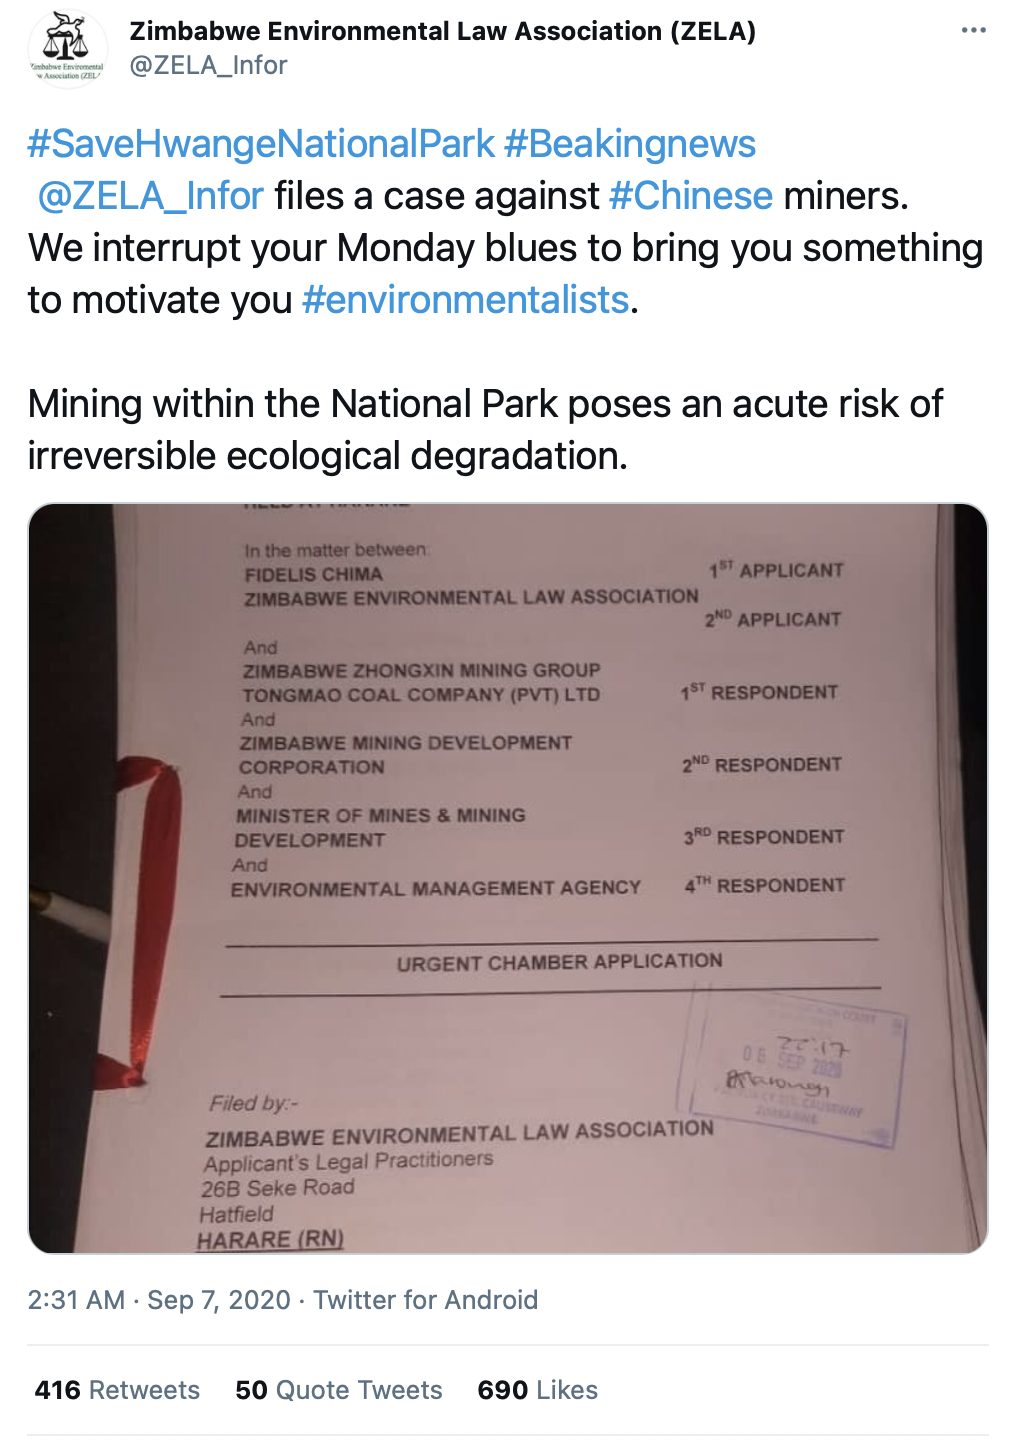 A tweet by the Zimbabwe Environmental Law Association about a lawsuit regarding Chinese mining licenses.